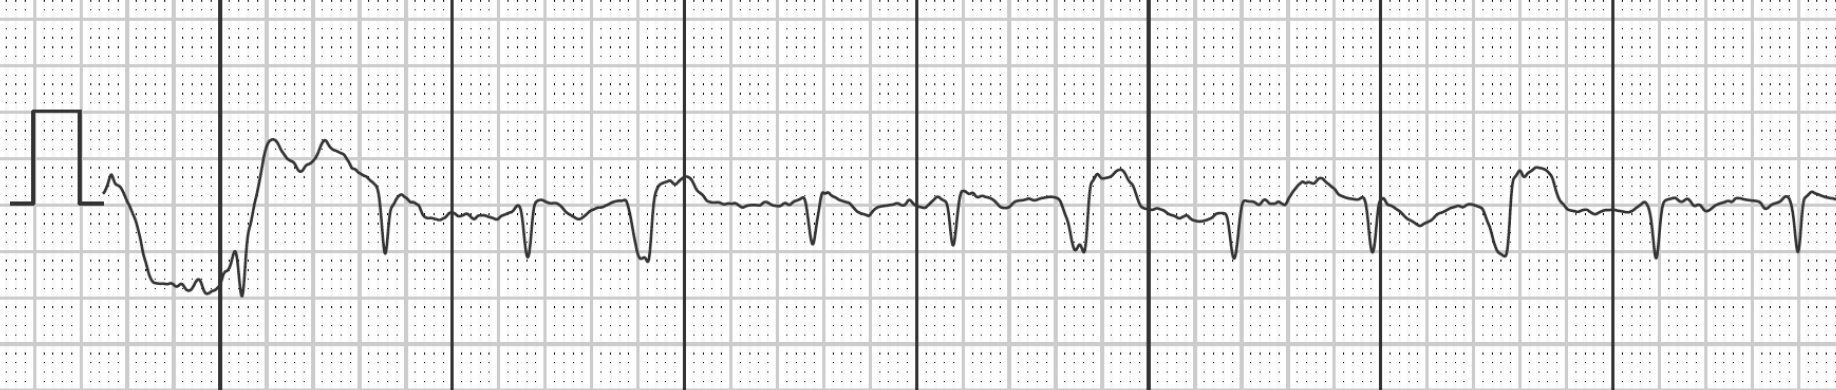 Graph showing unspecified lead of a 1-lead-ECG